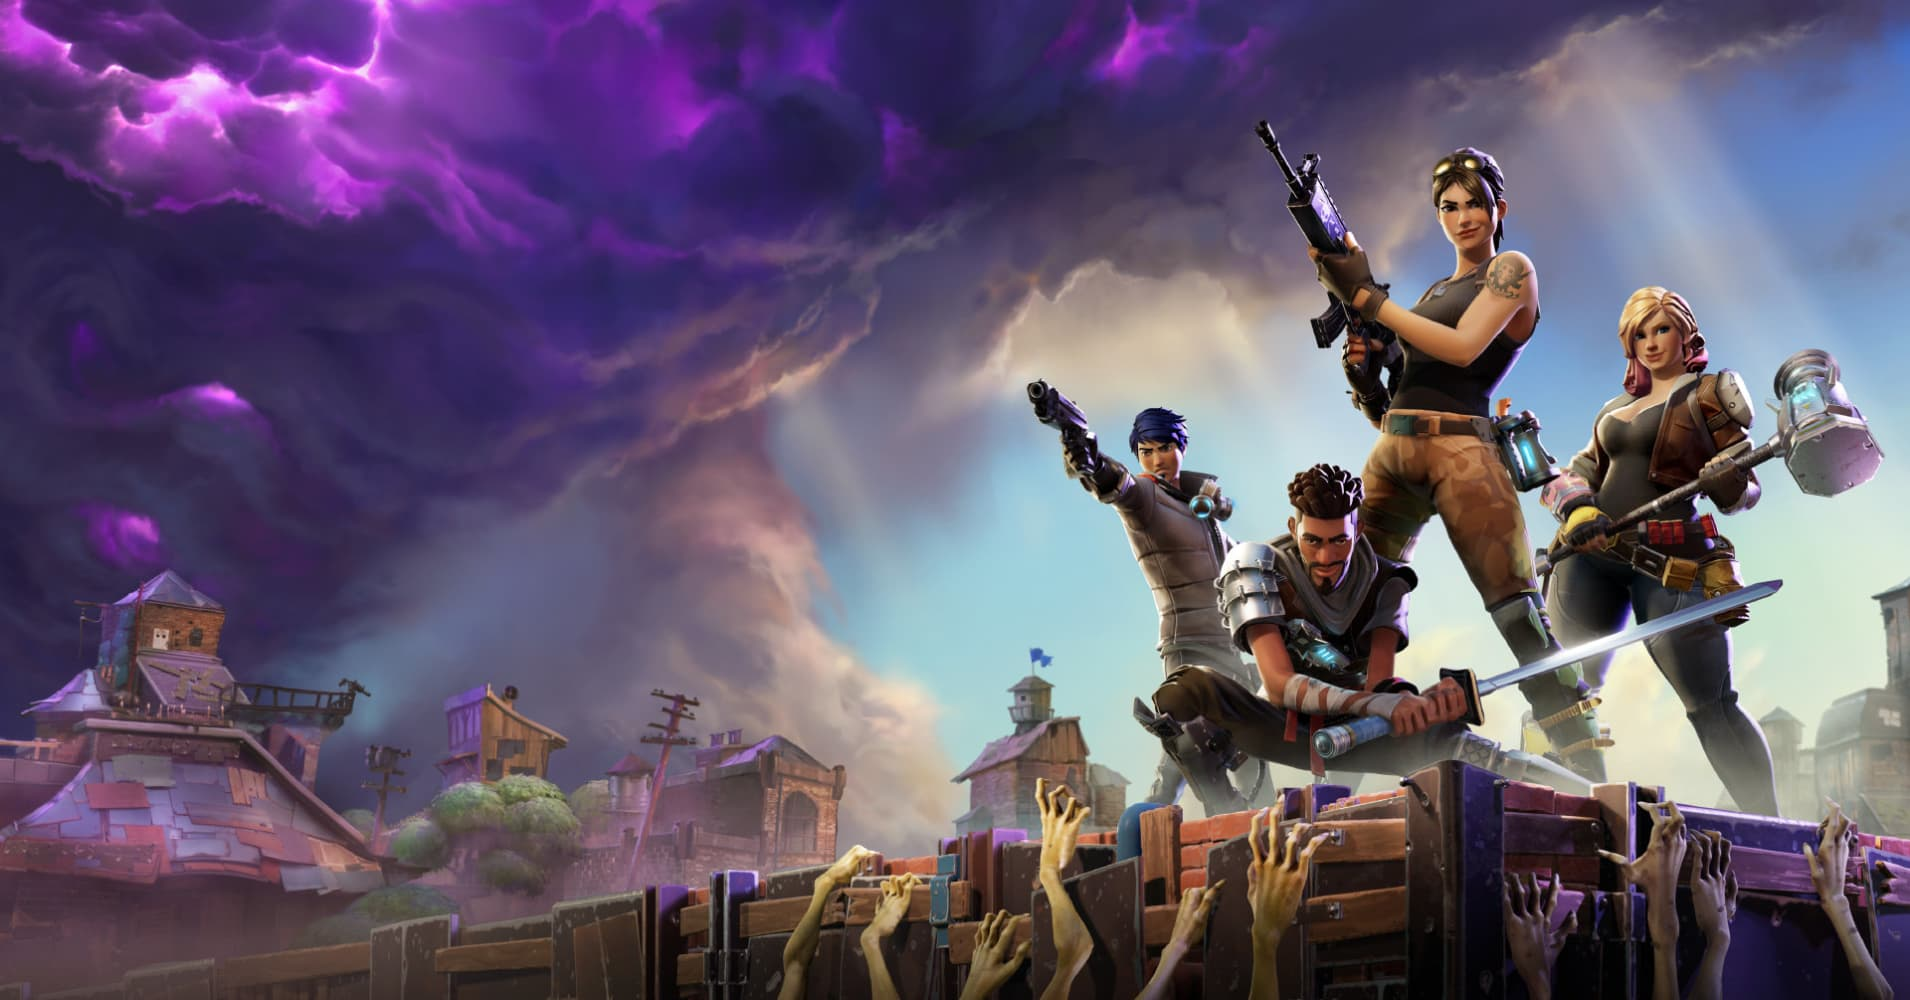 The company behind billion-dollar game 'Fortnite' was founded by a college kid out of his parents' house